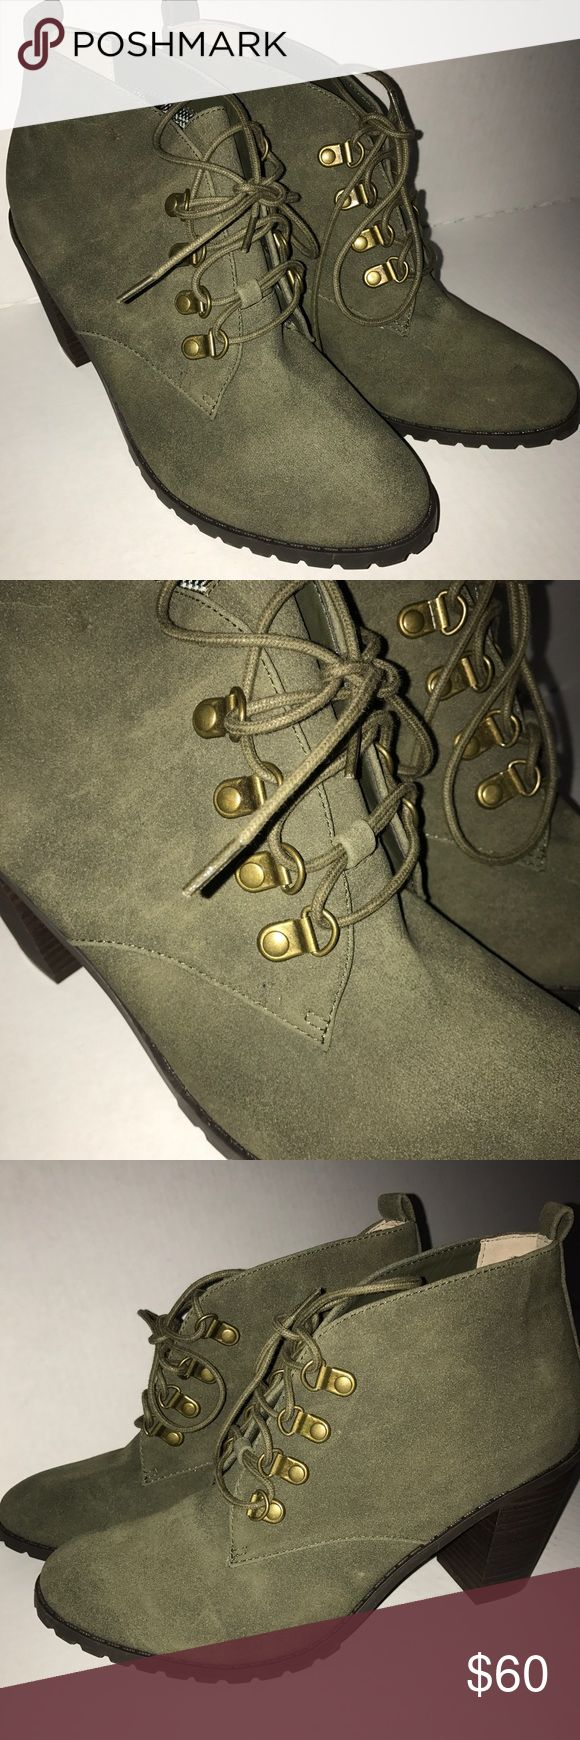 New Fall Olive Green Booties *Olive green *NEW *women's size 9 Restricted Shoes Ankle Boots & Booties